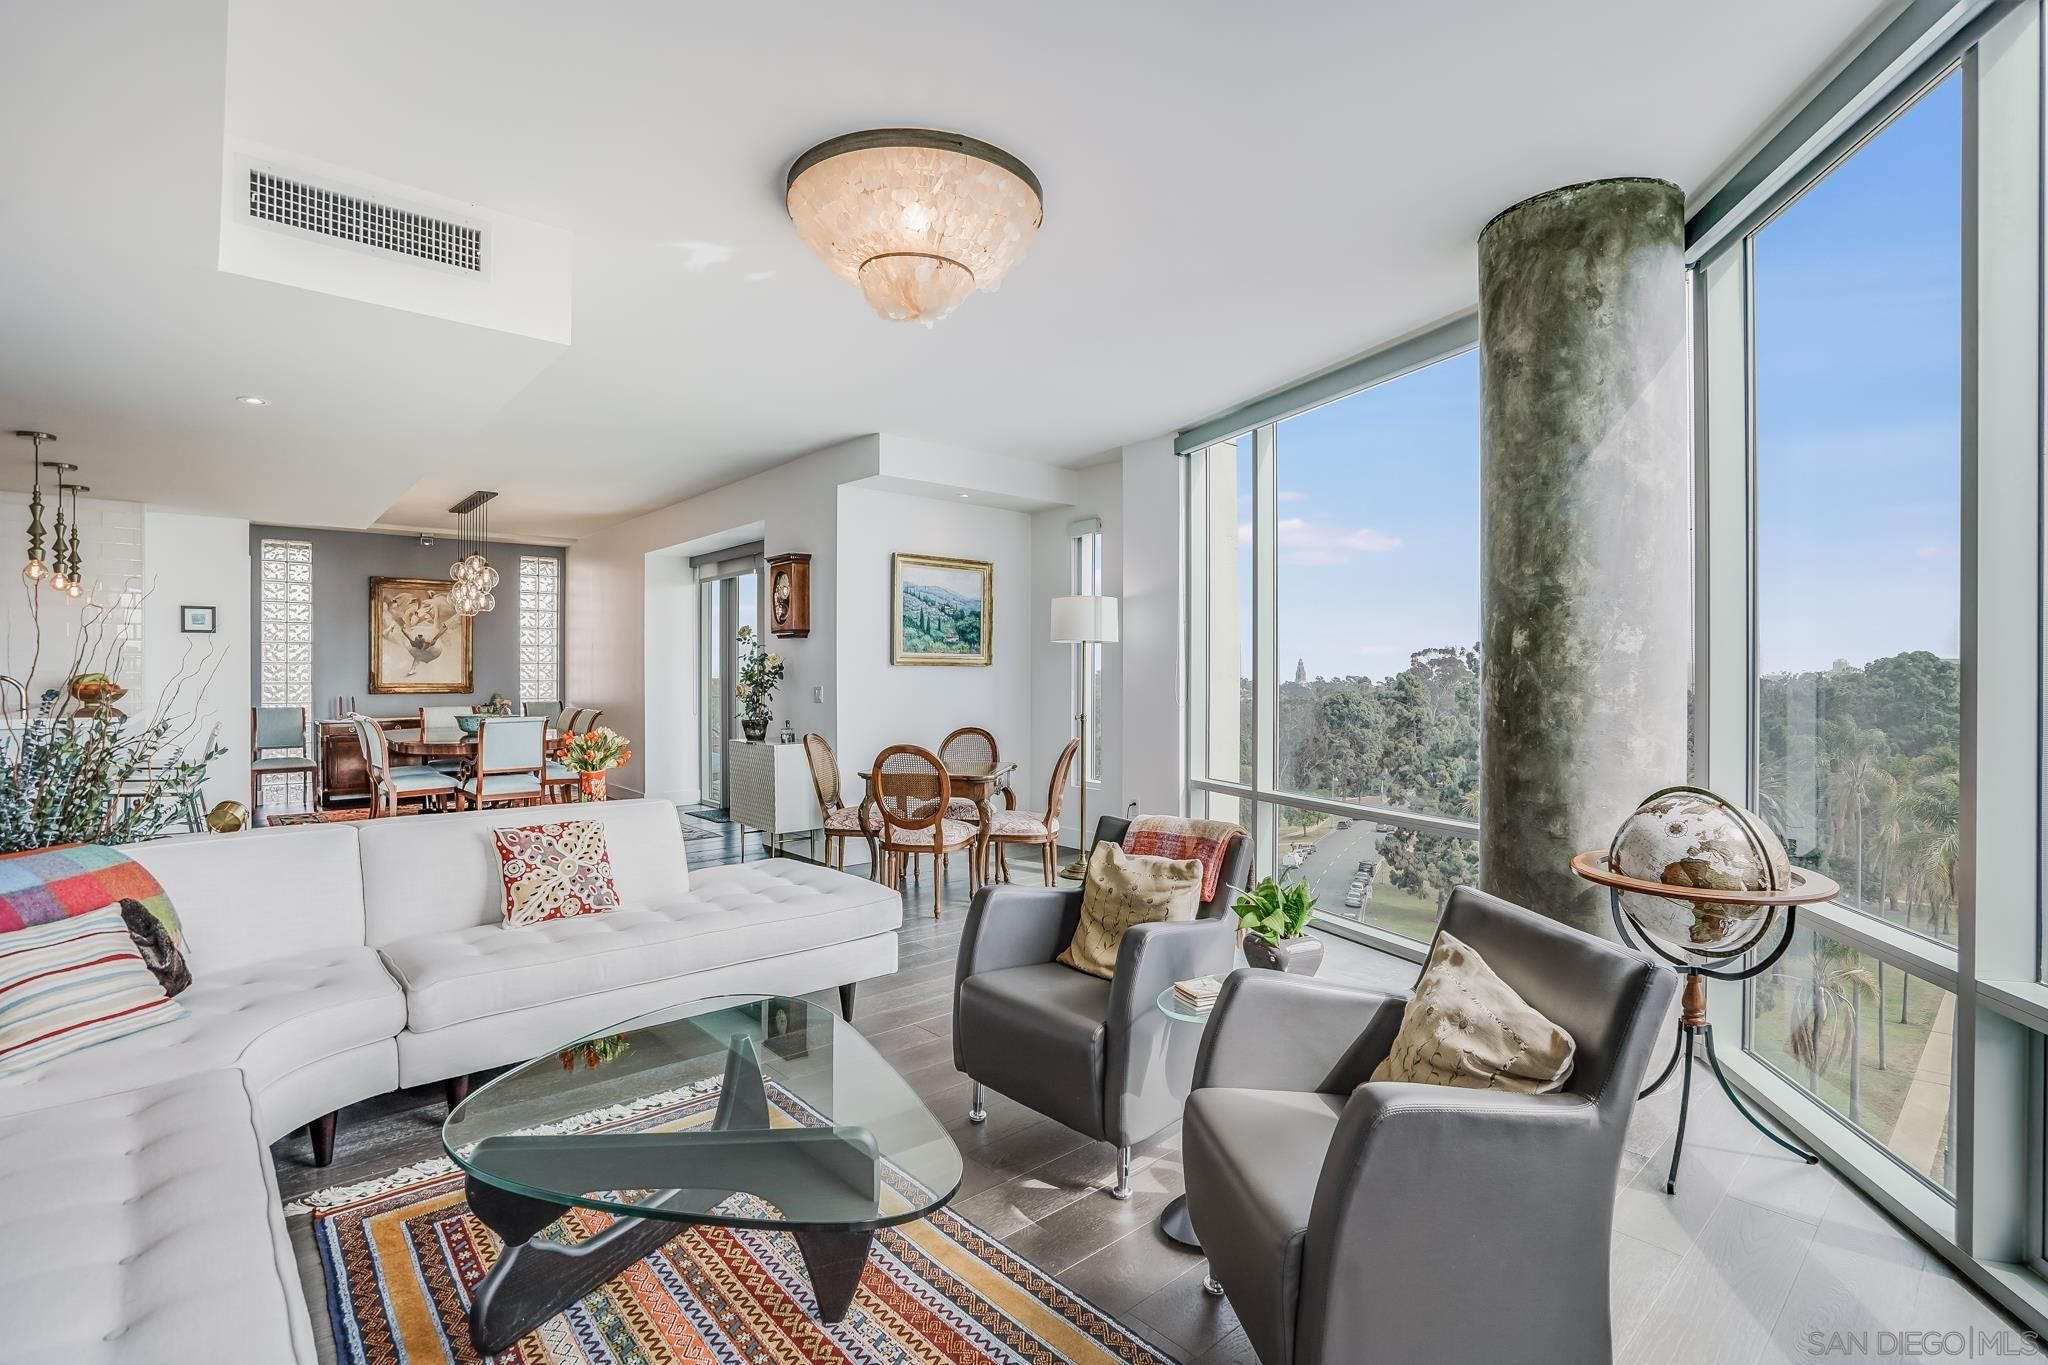 Main Photo: HILLCREST Condo for sale : 2 bedrooms : 3415 6th Ave #9 in San Diego